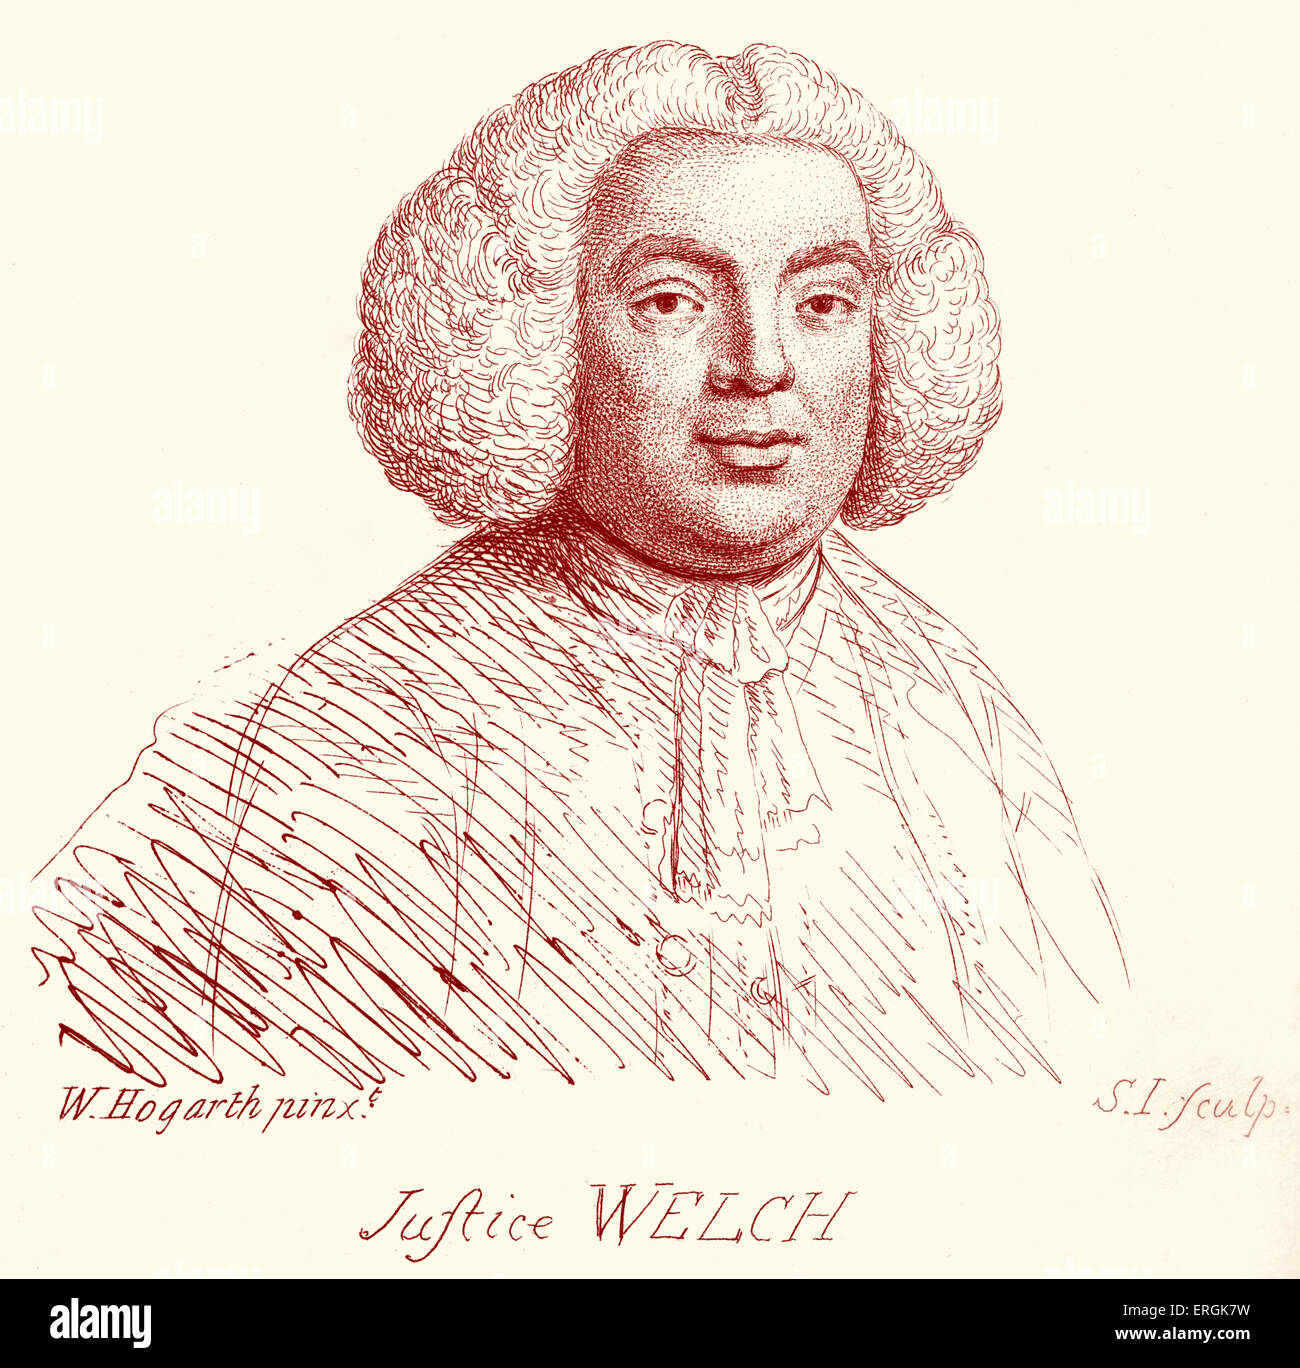 Justice Welch - portrait by William Hogarth. Engraved by Samuel Ireland. C. 1787. - Stock Image